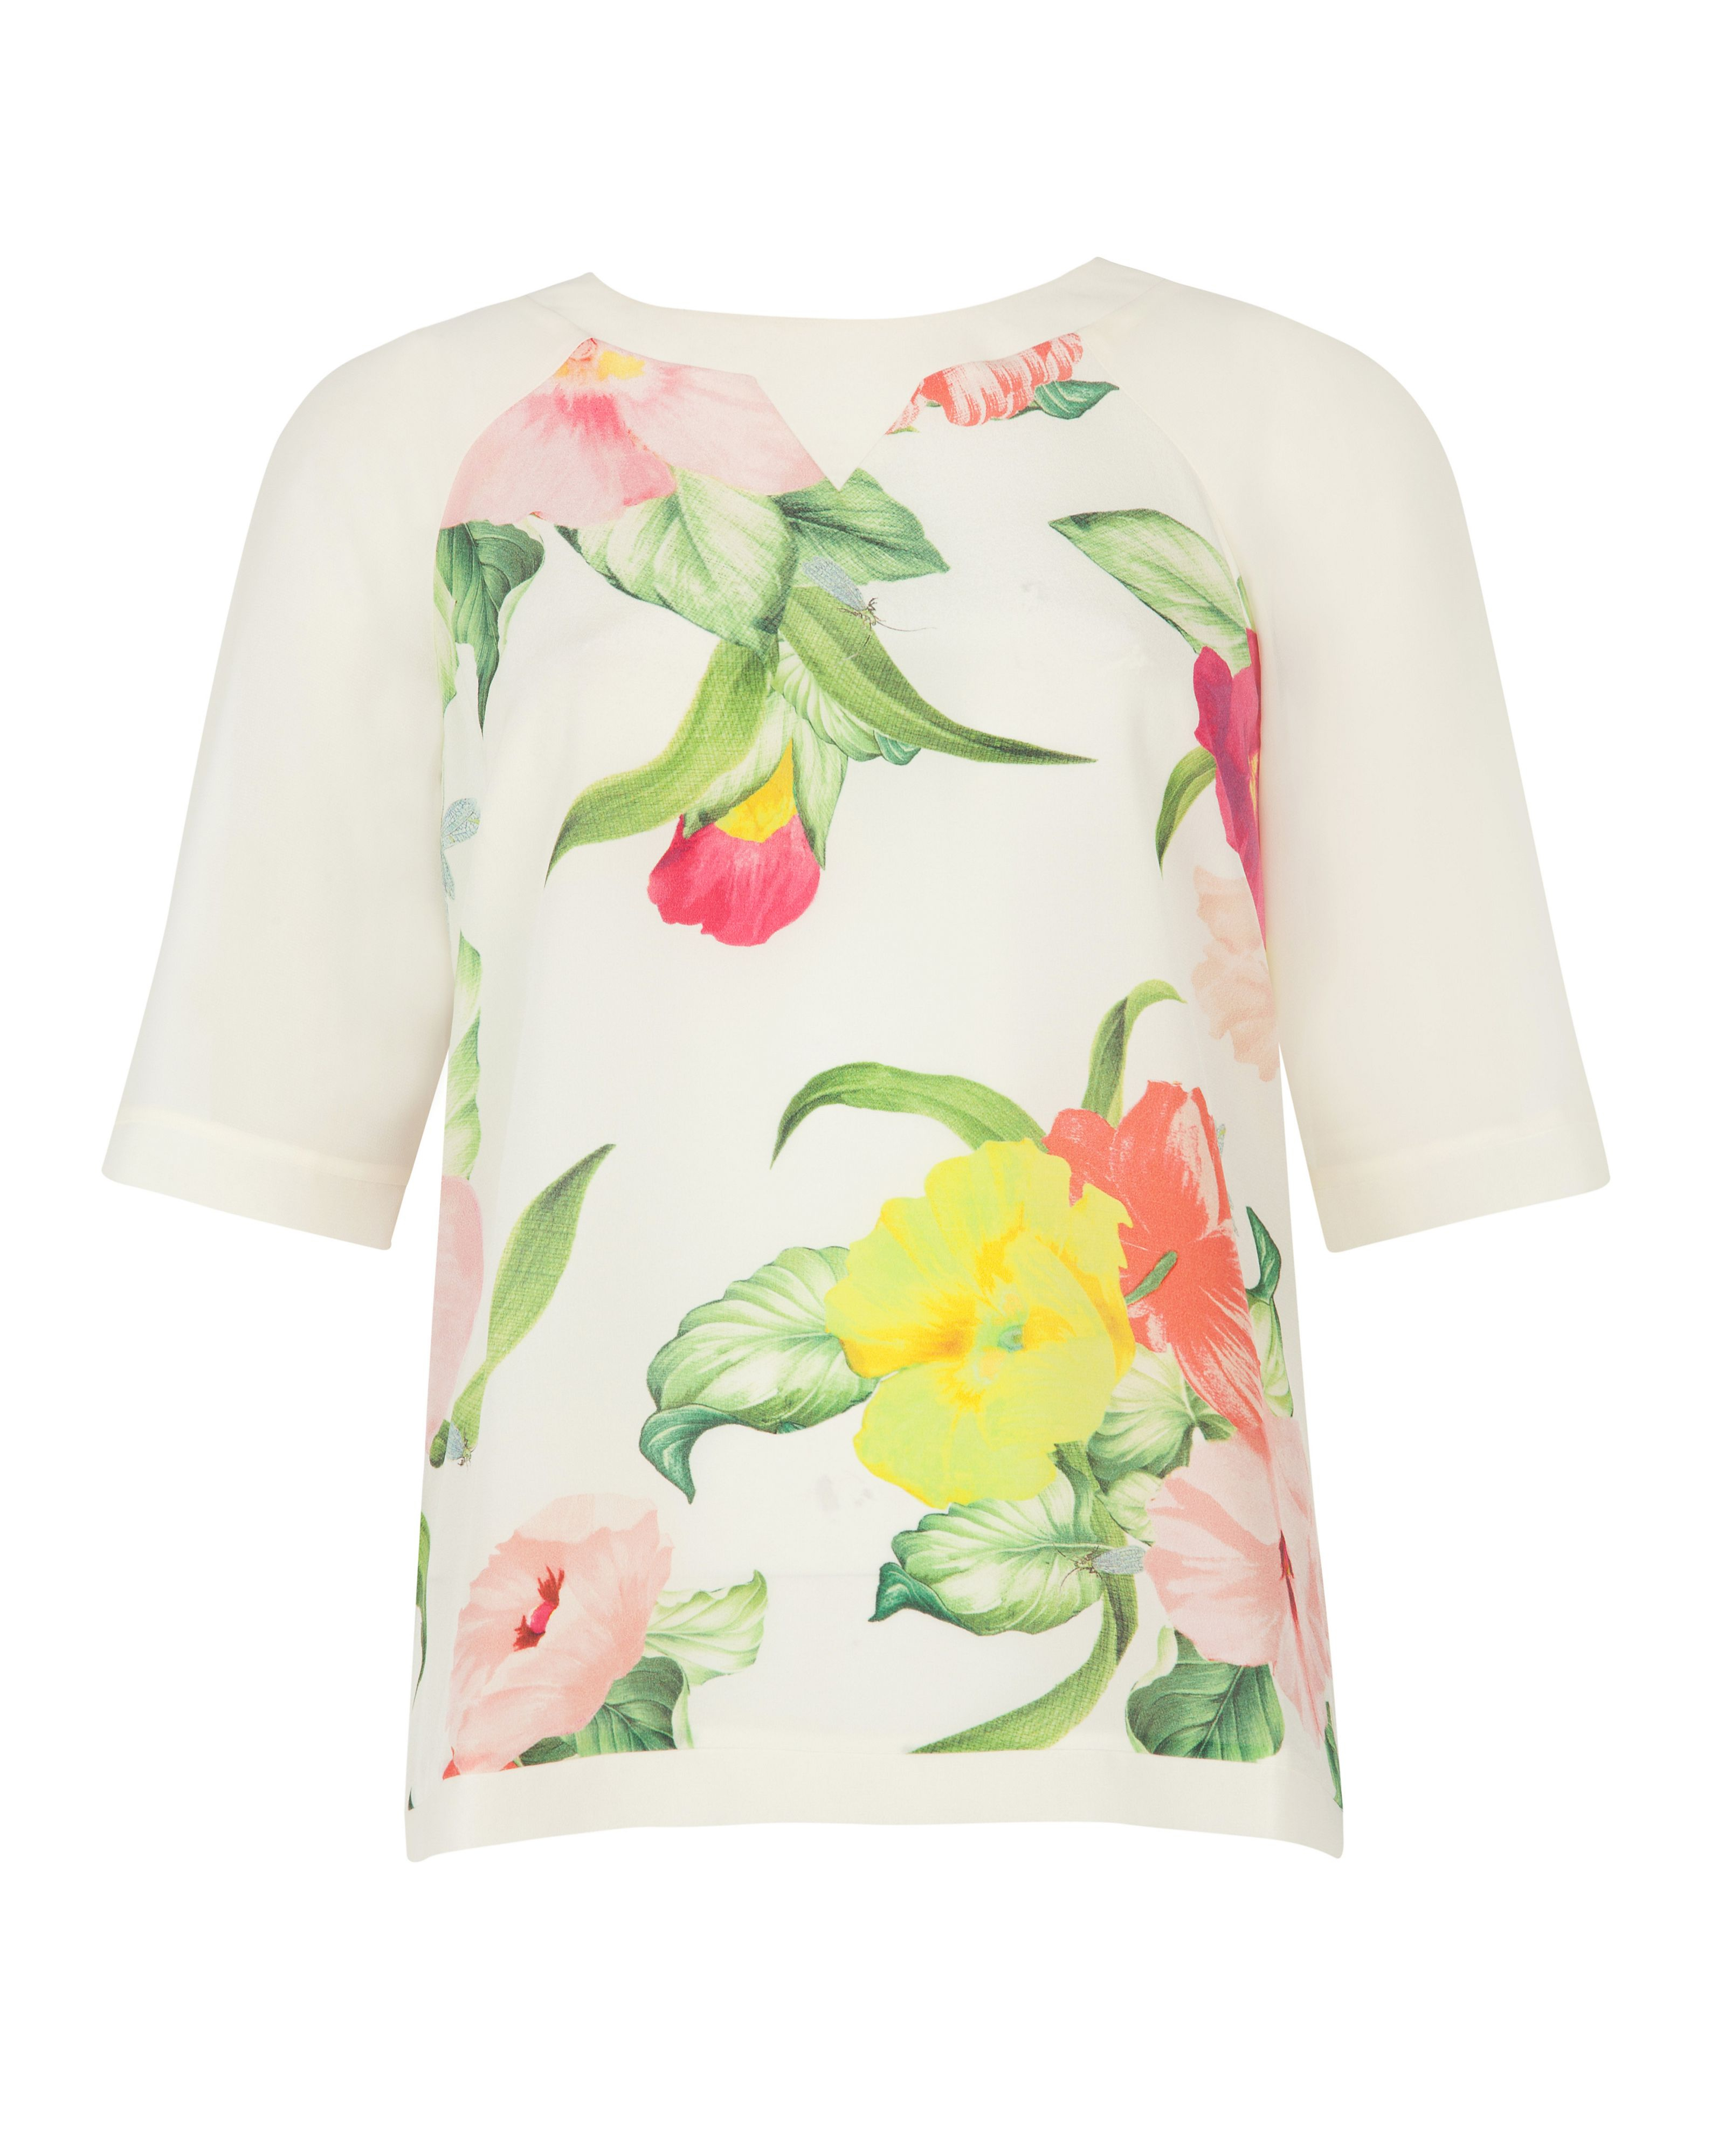 Ted baker Roenina Floral Printed Top in Natural